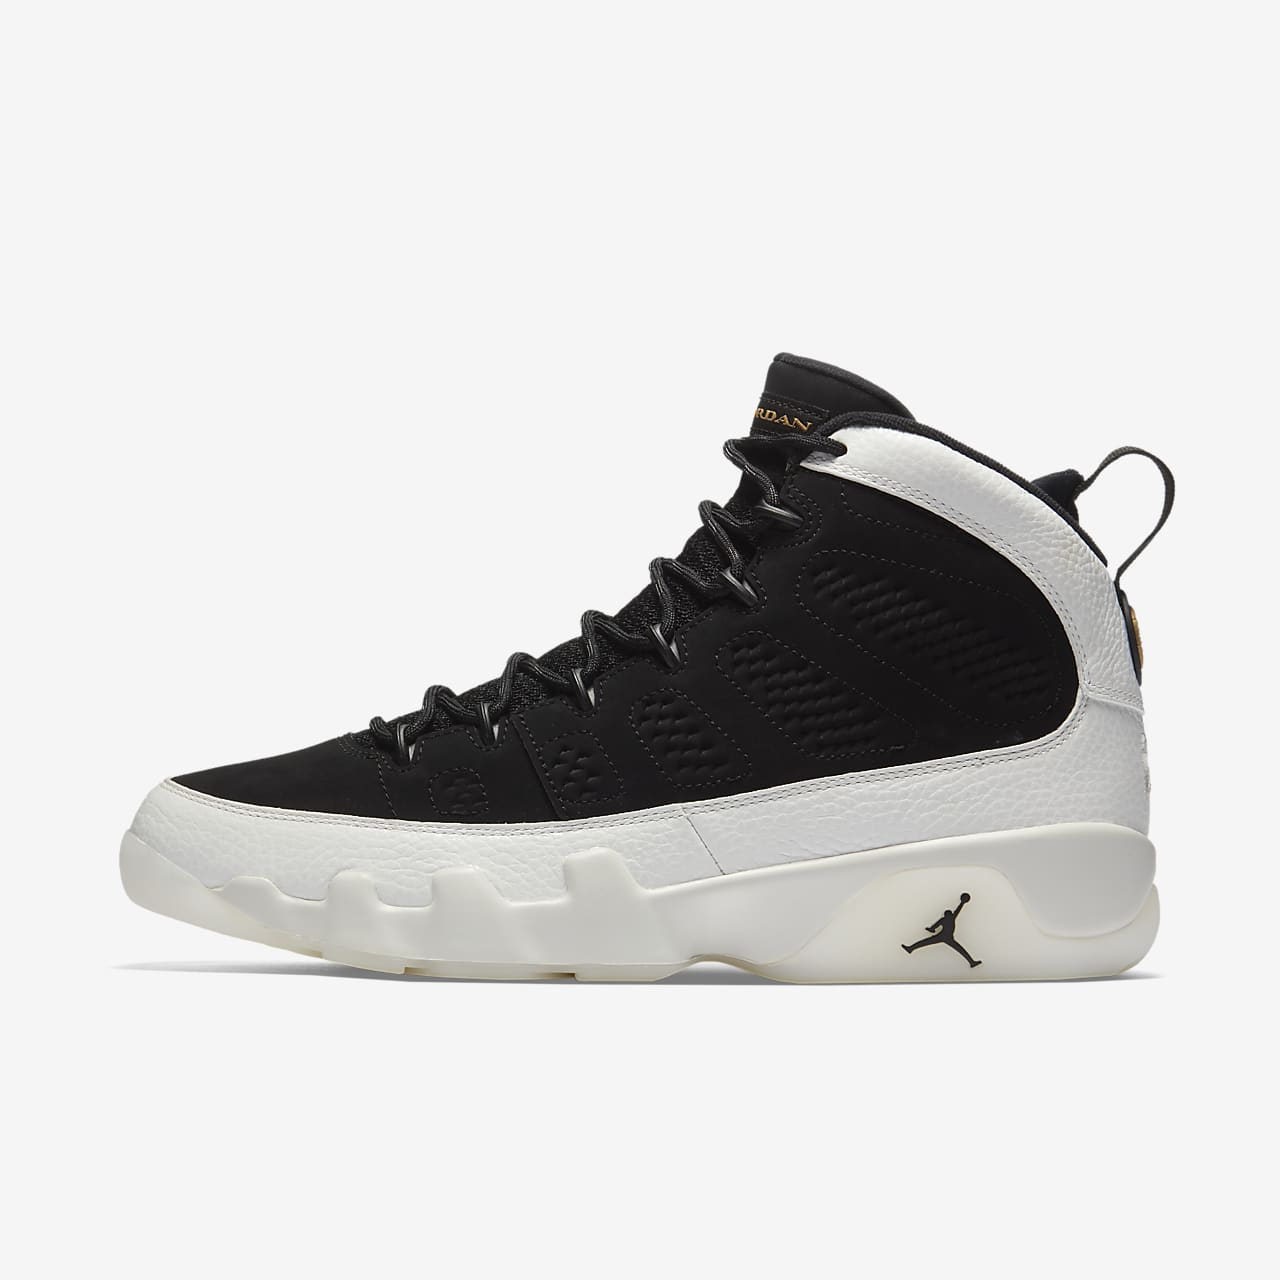 Hobart Aptitud proyector  Air Jordan 9 Retro Men's Shoe. Nike ID